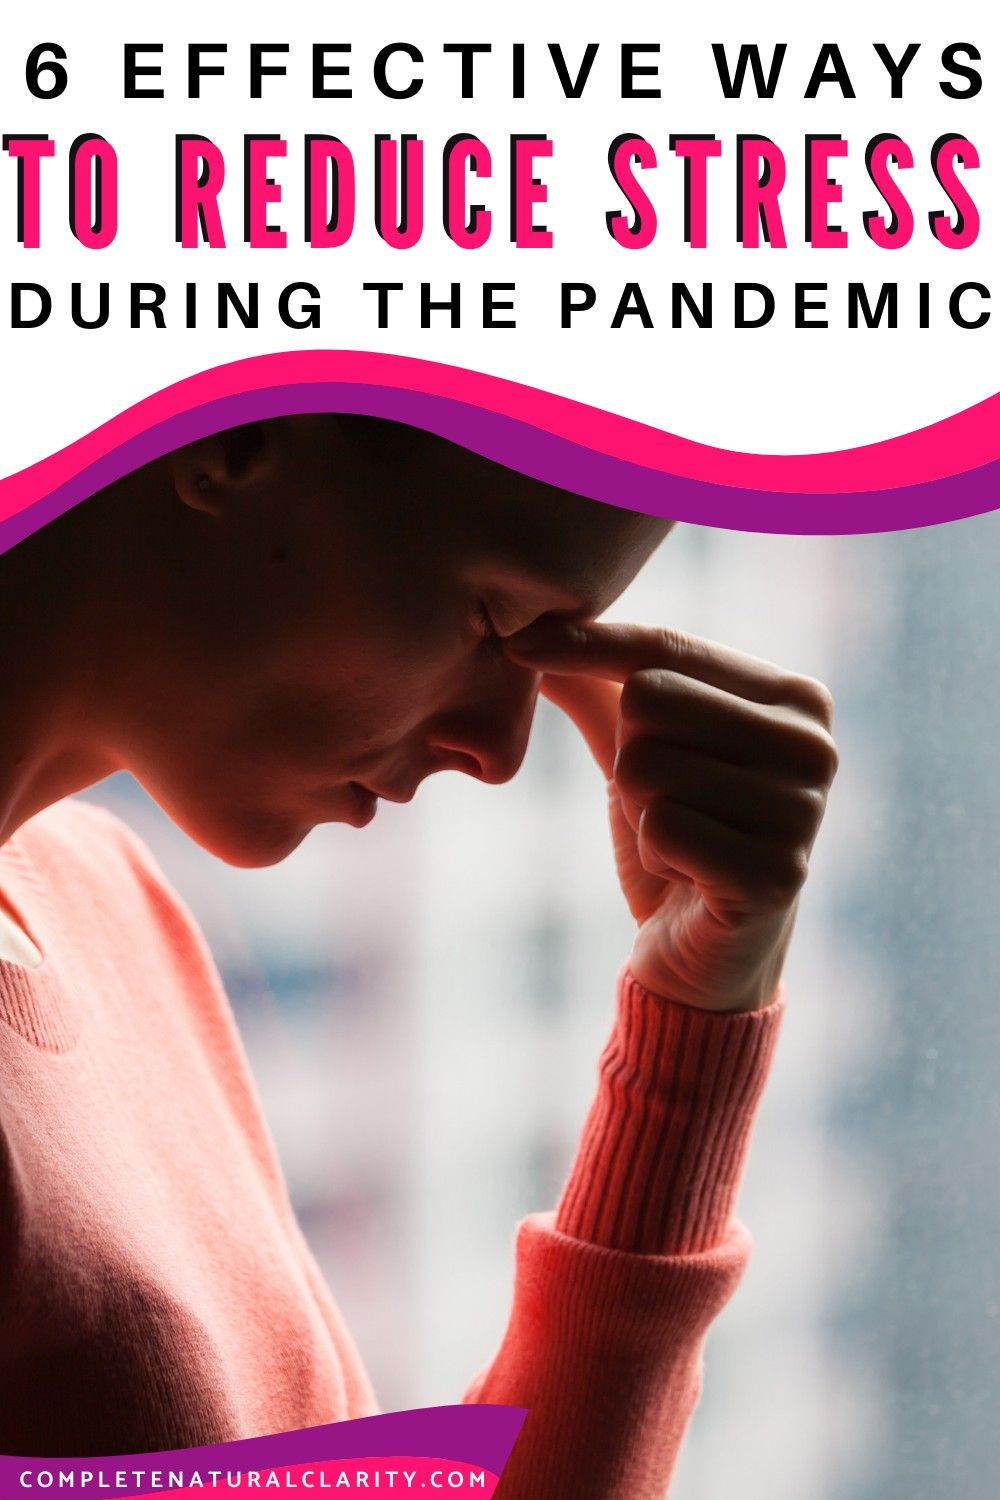 6 EFFECTIVE Ways to Reduce Stress & Relieve Anxiety During the Pandemic   Mental Health Tips Gallery